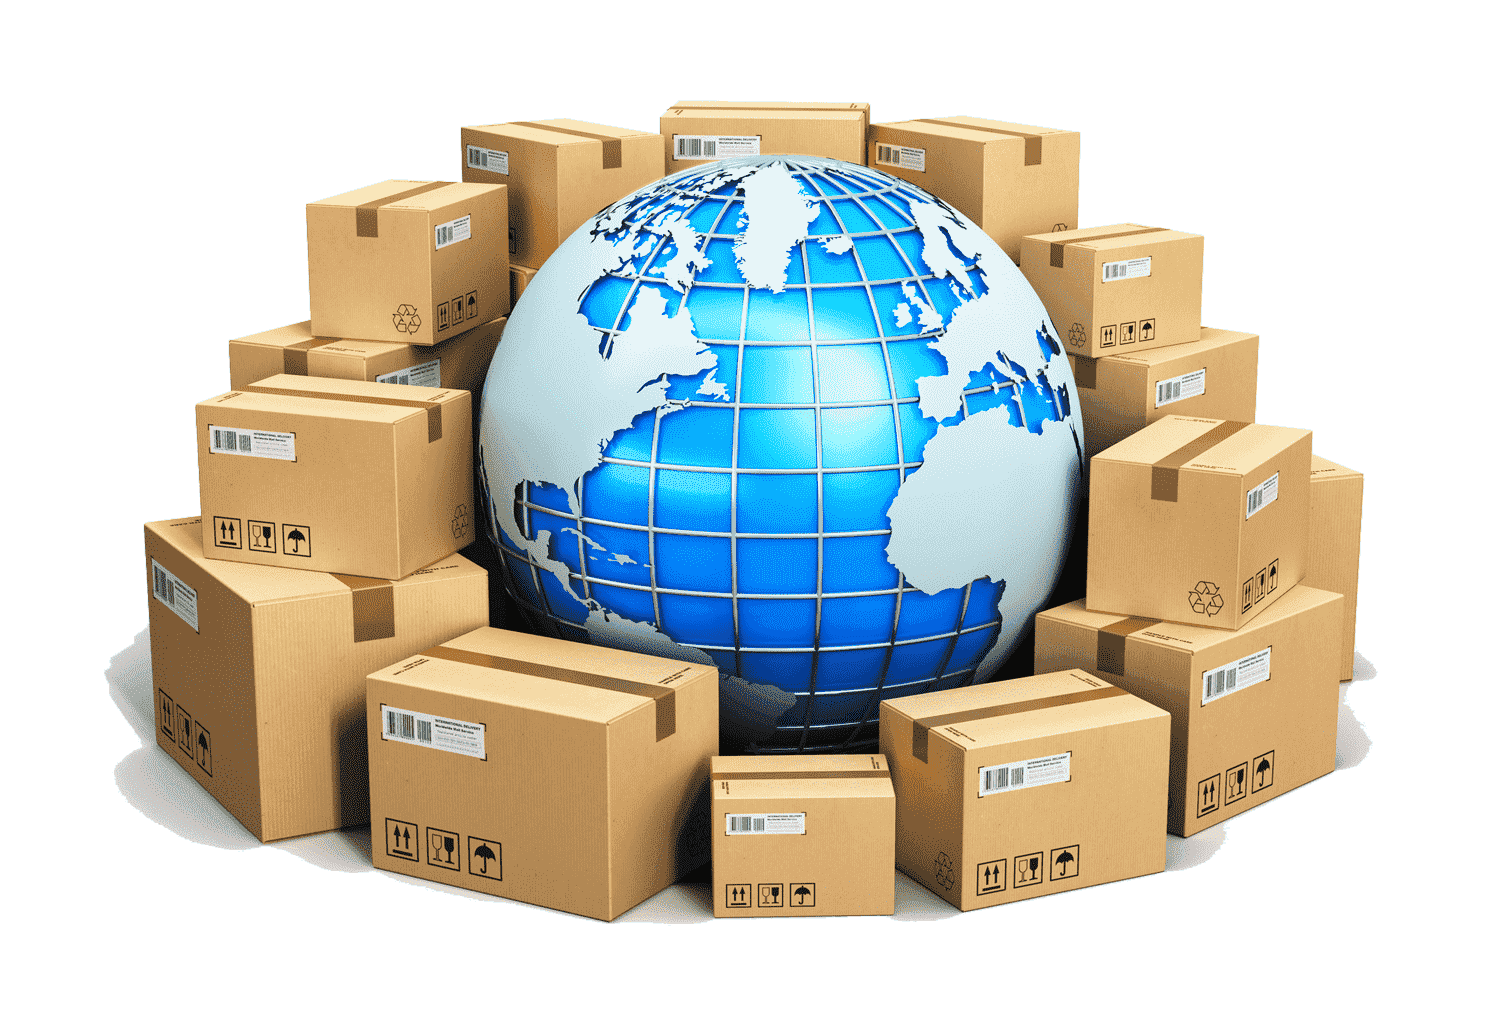 Shipping Boxes - PriorityBiz Shipping and Fulfillment